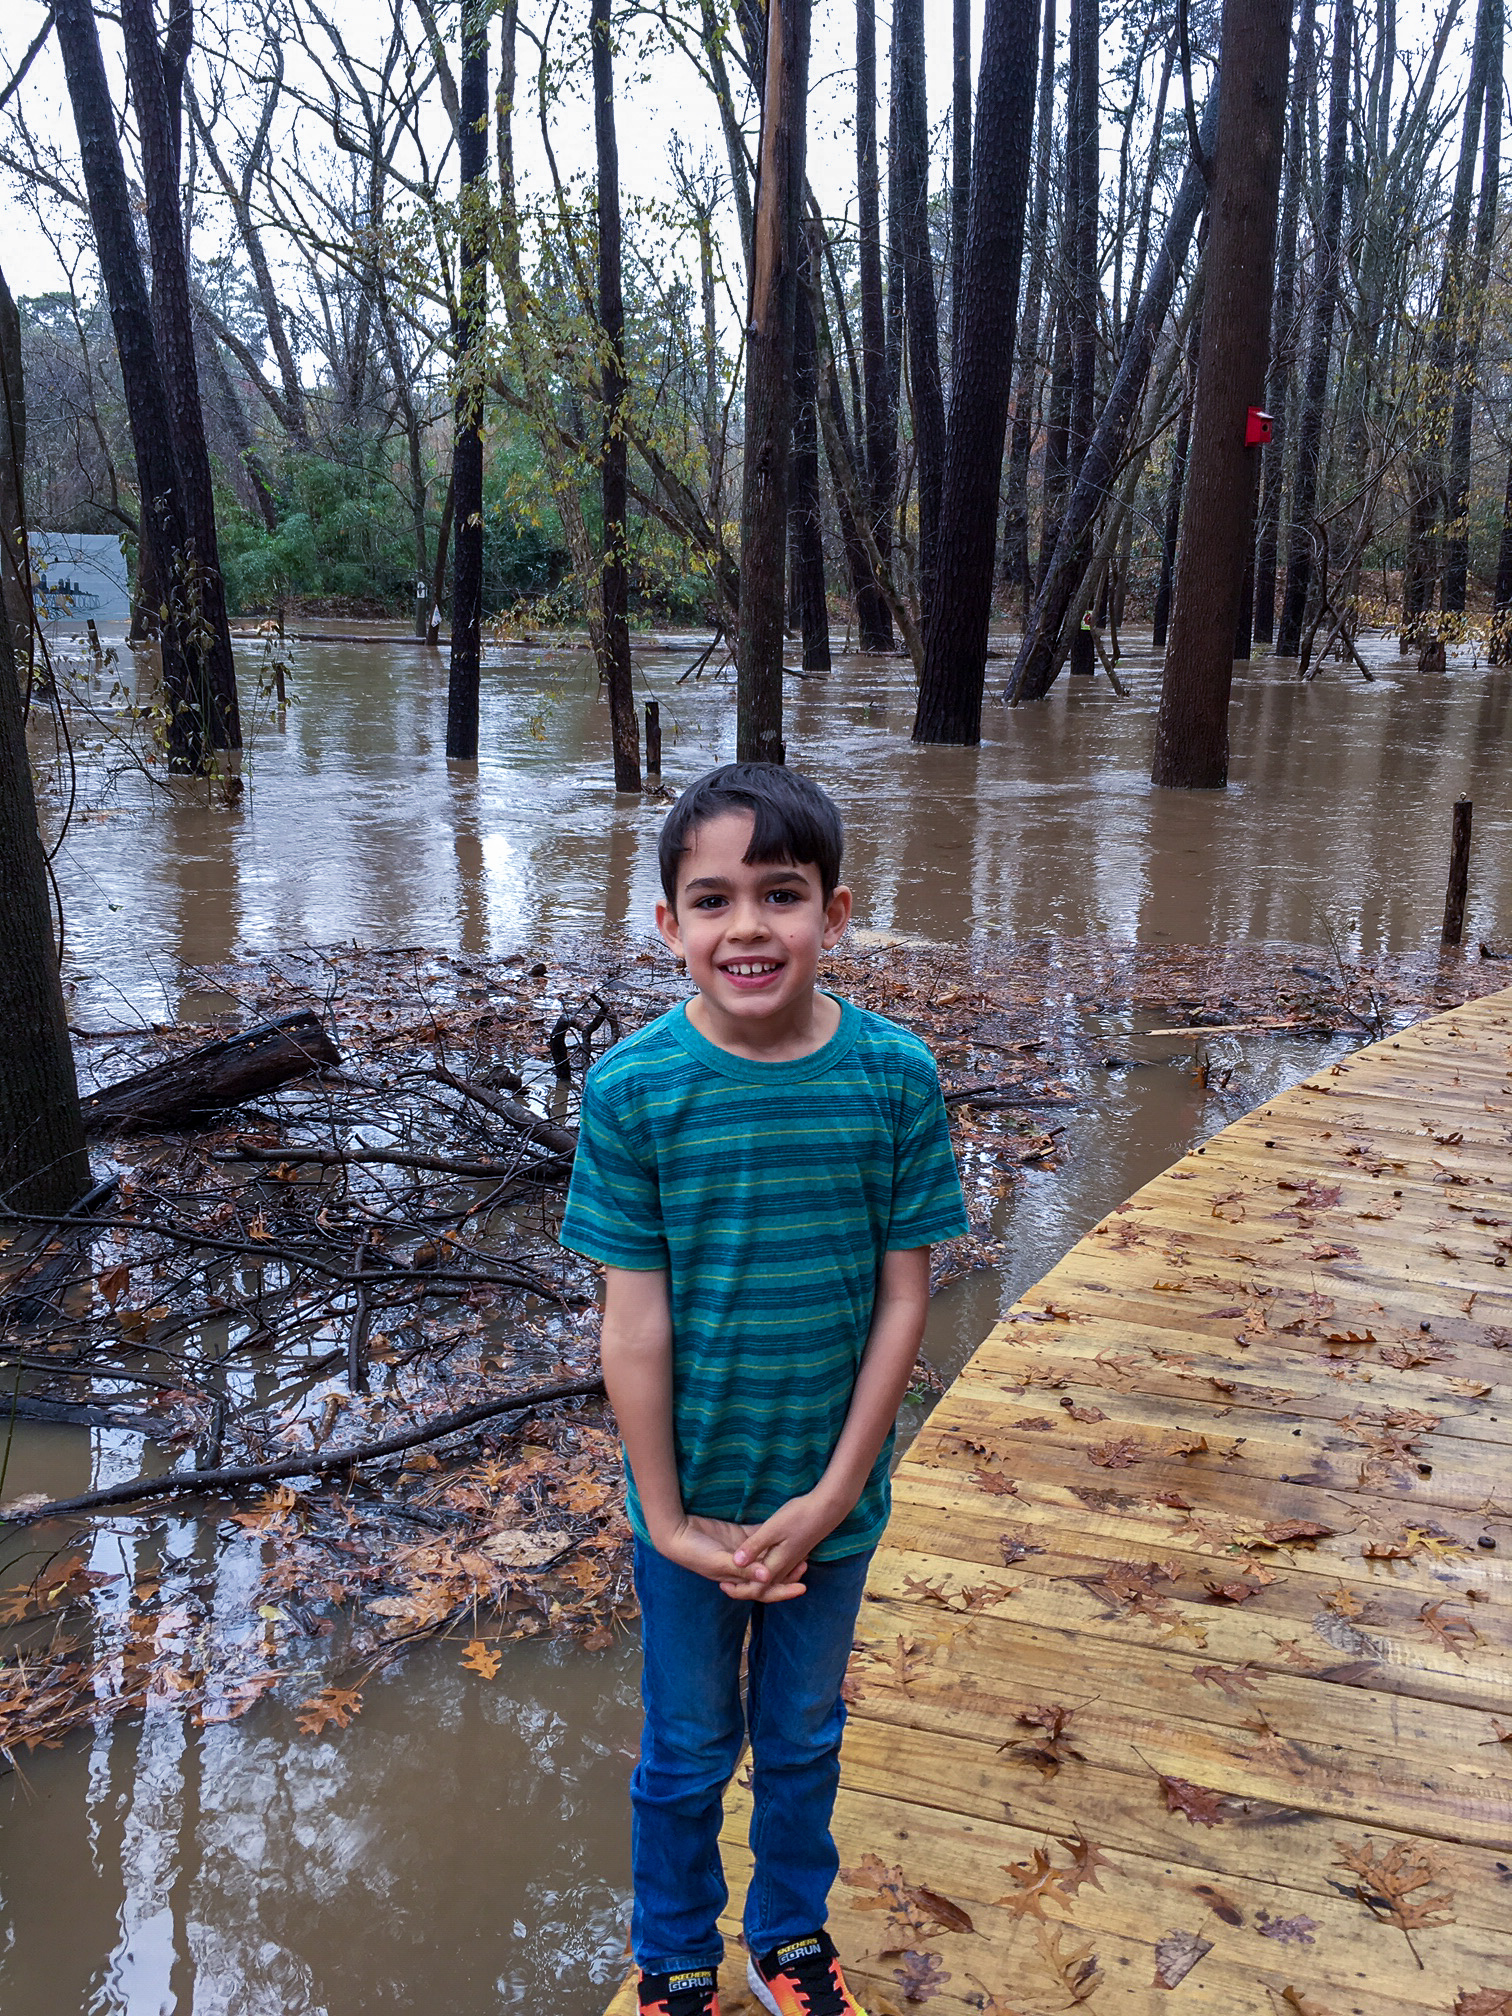 The Woodland Loop is a flood plain for Nancy Creek.